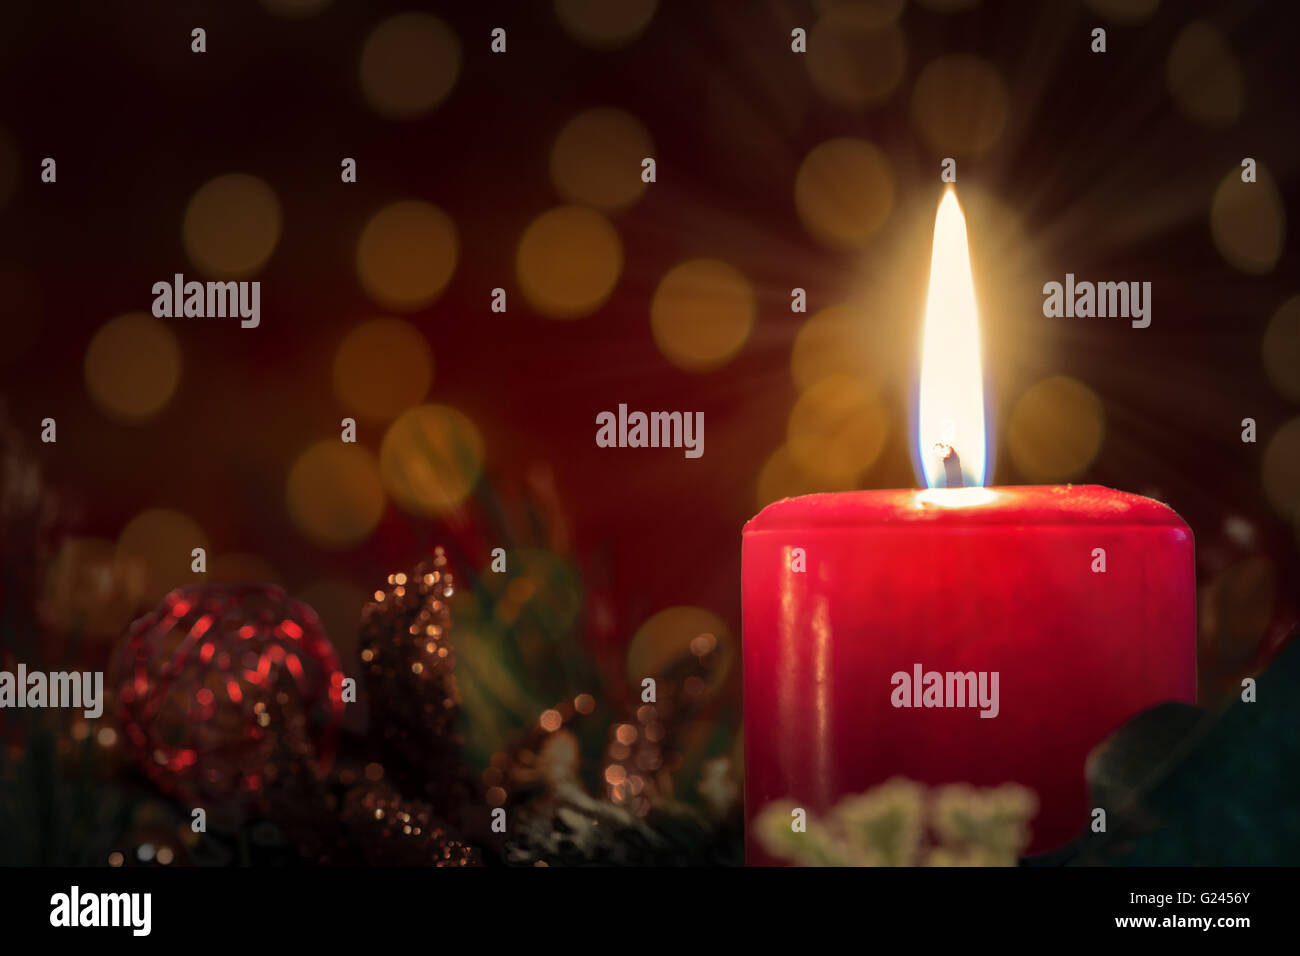 Christmas decoration with burning red candle. Blurred background and copy space. - Stock Image